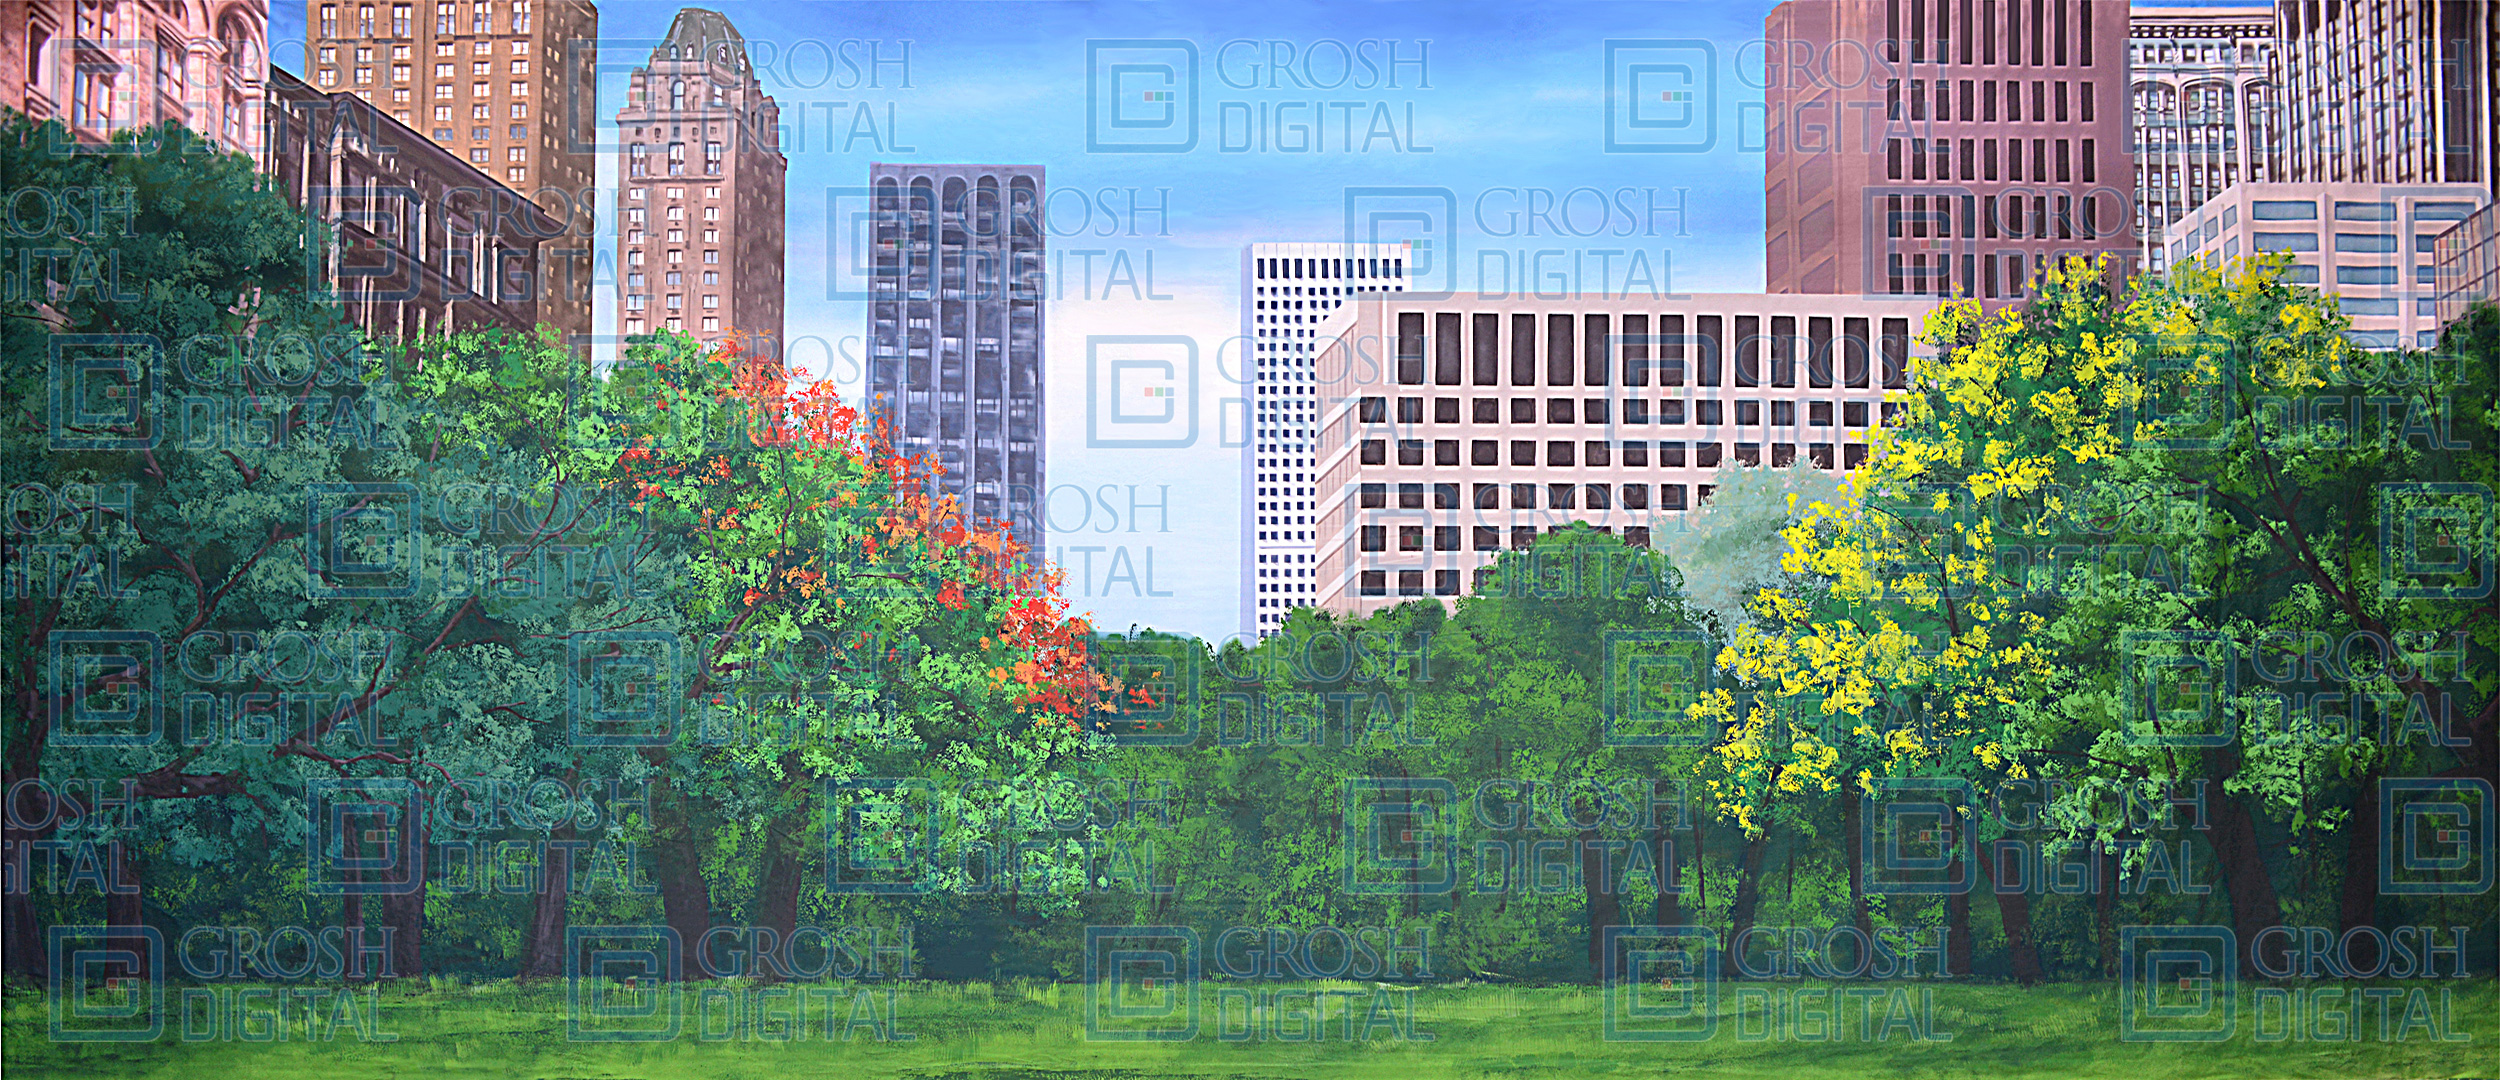 Central Park 2 Projected Backdrop for Annie, Broadway/New York, Damn Yankees, Elf the Musical, Guys and Dolls, How to Succeed in Business, Landscapes, Madagascar, Music Man, Skylines, Thoroughly Modern Millie